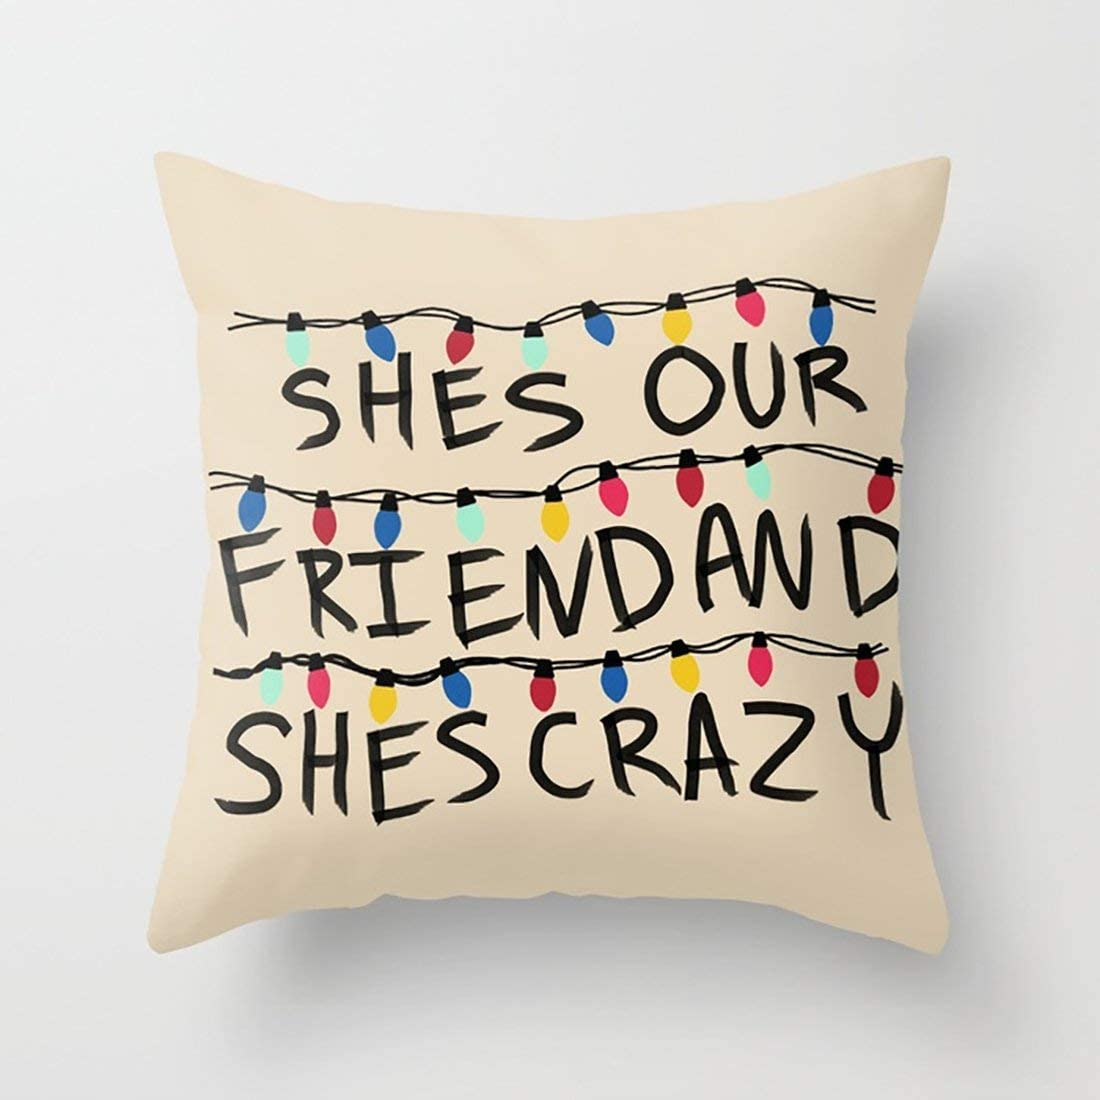 17.7in*17.7in zhongjiany Stranger Things Throw Pillowcase Sofa Pillow Case Cushion Cover for Car Bed Decoration